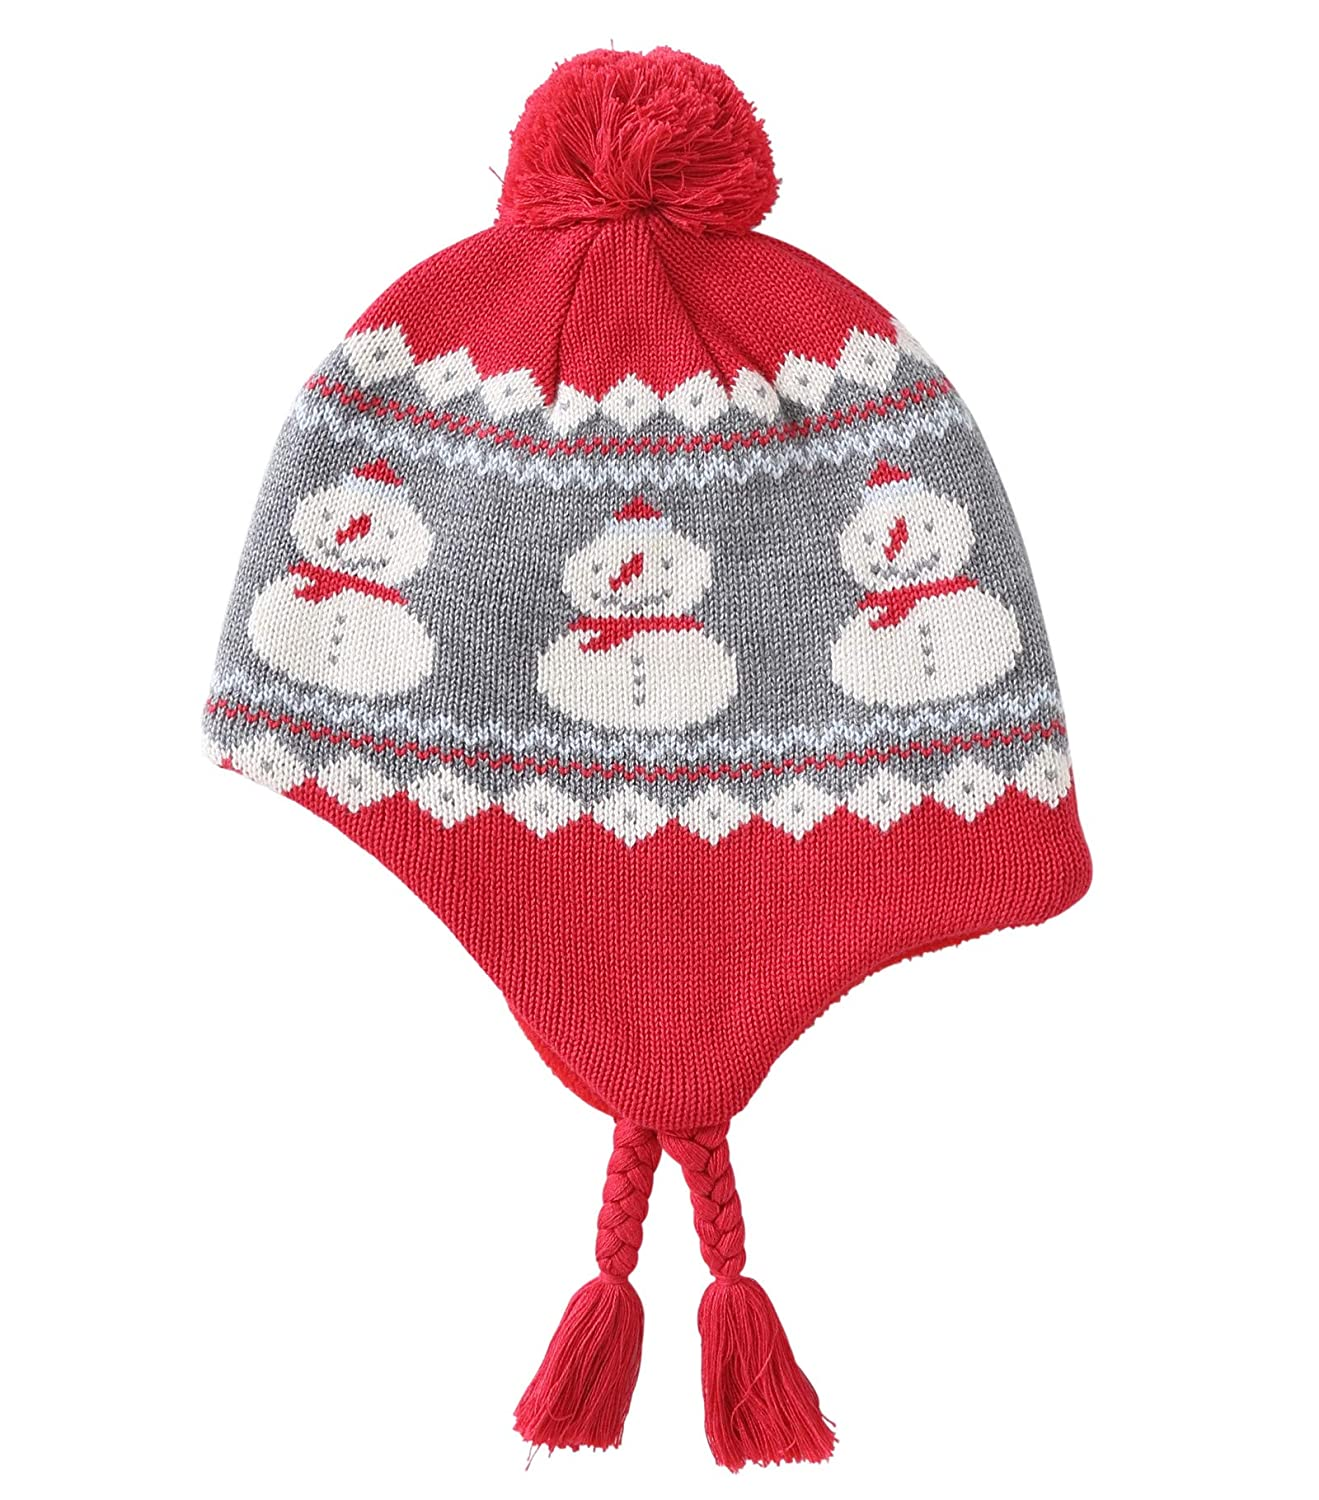 Connectyle Toddler Boys Girls Cotton Knit Kids Hat with Earflap Winter Hats